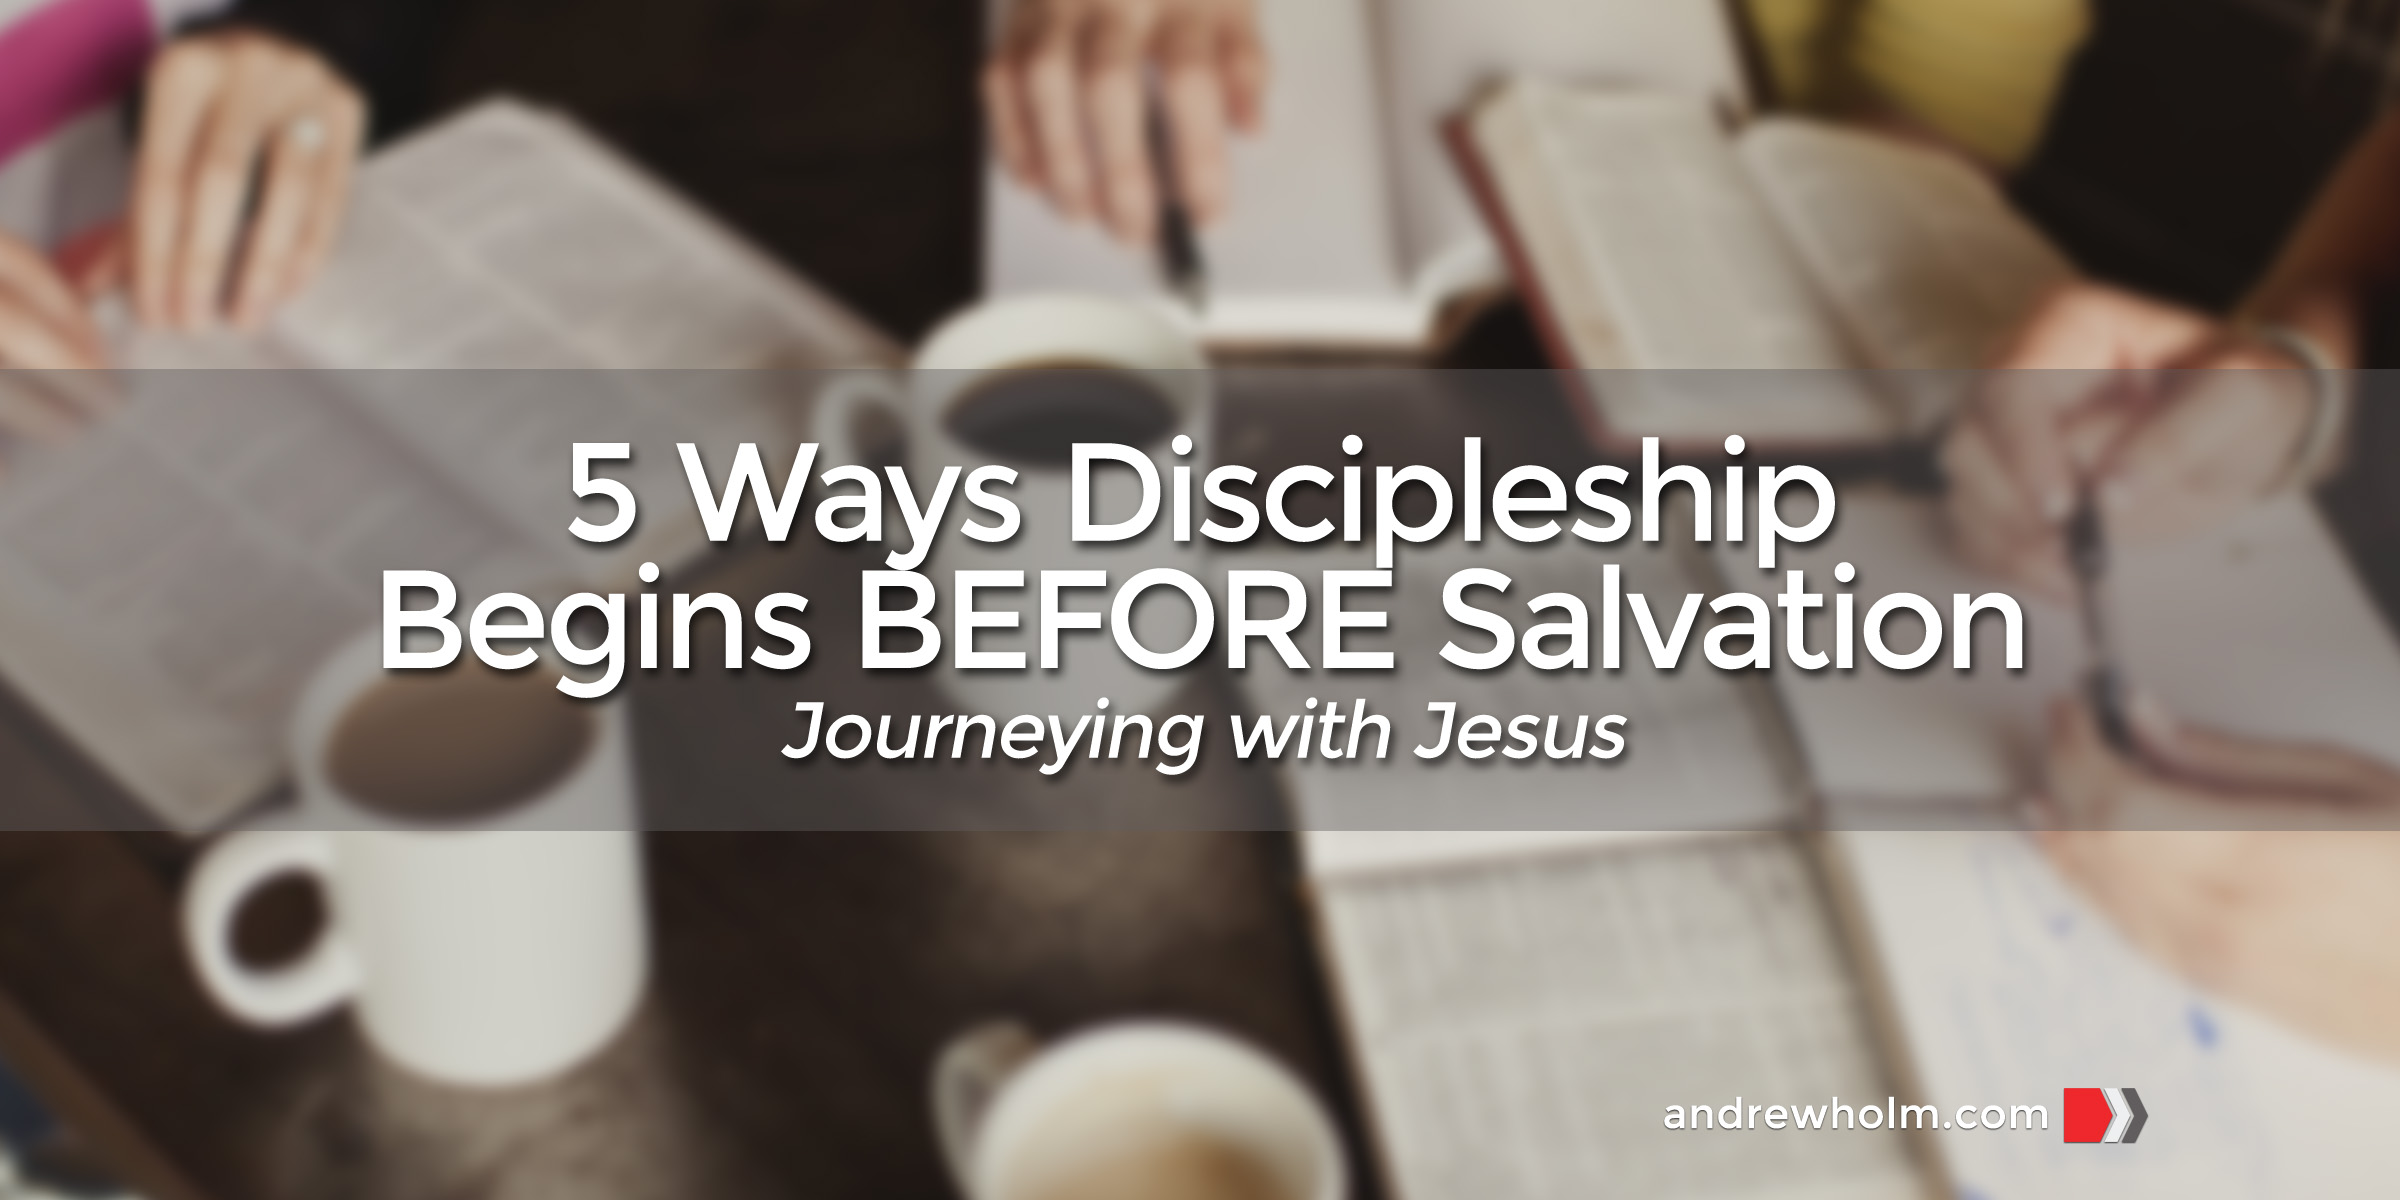 5 Ways Discipleship Begins BEFORE Salvation